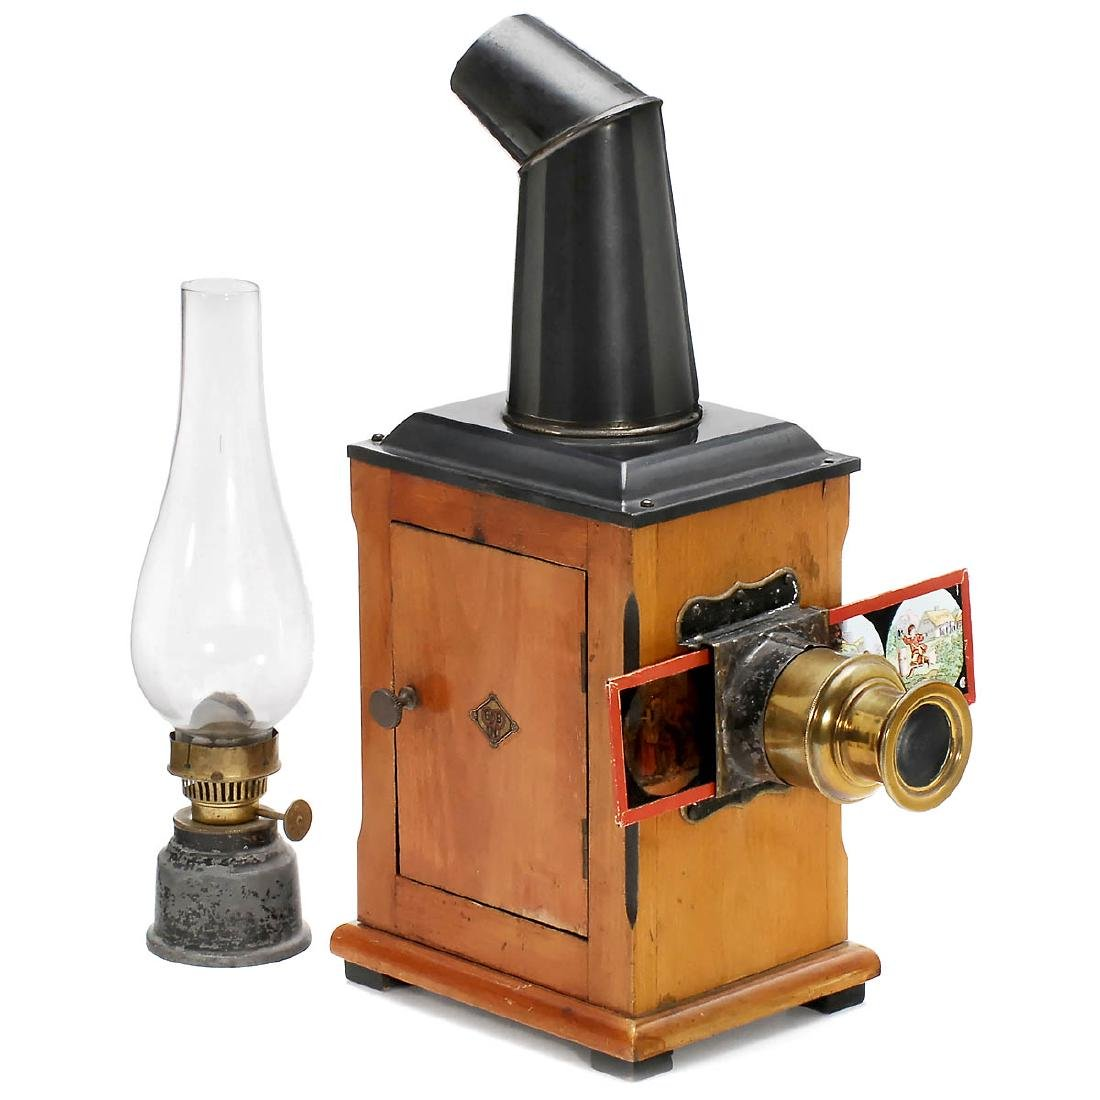 Wood Magic Lantern by Gebr. Bing, 1880-90